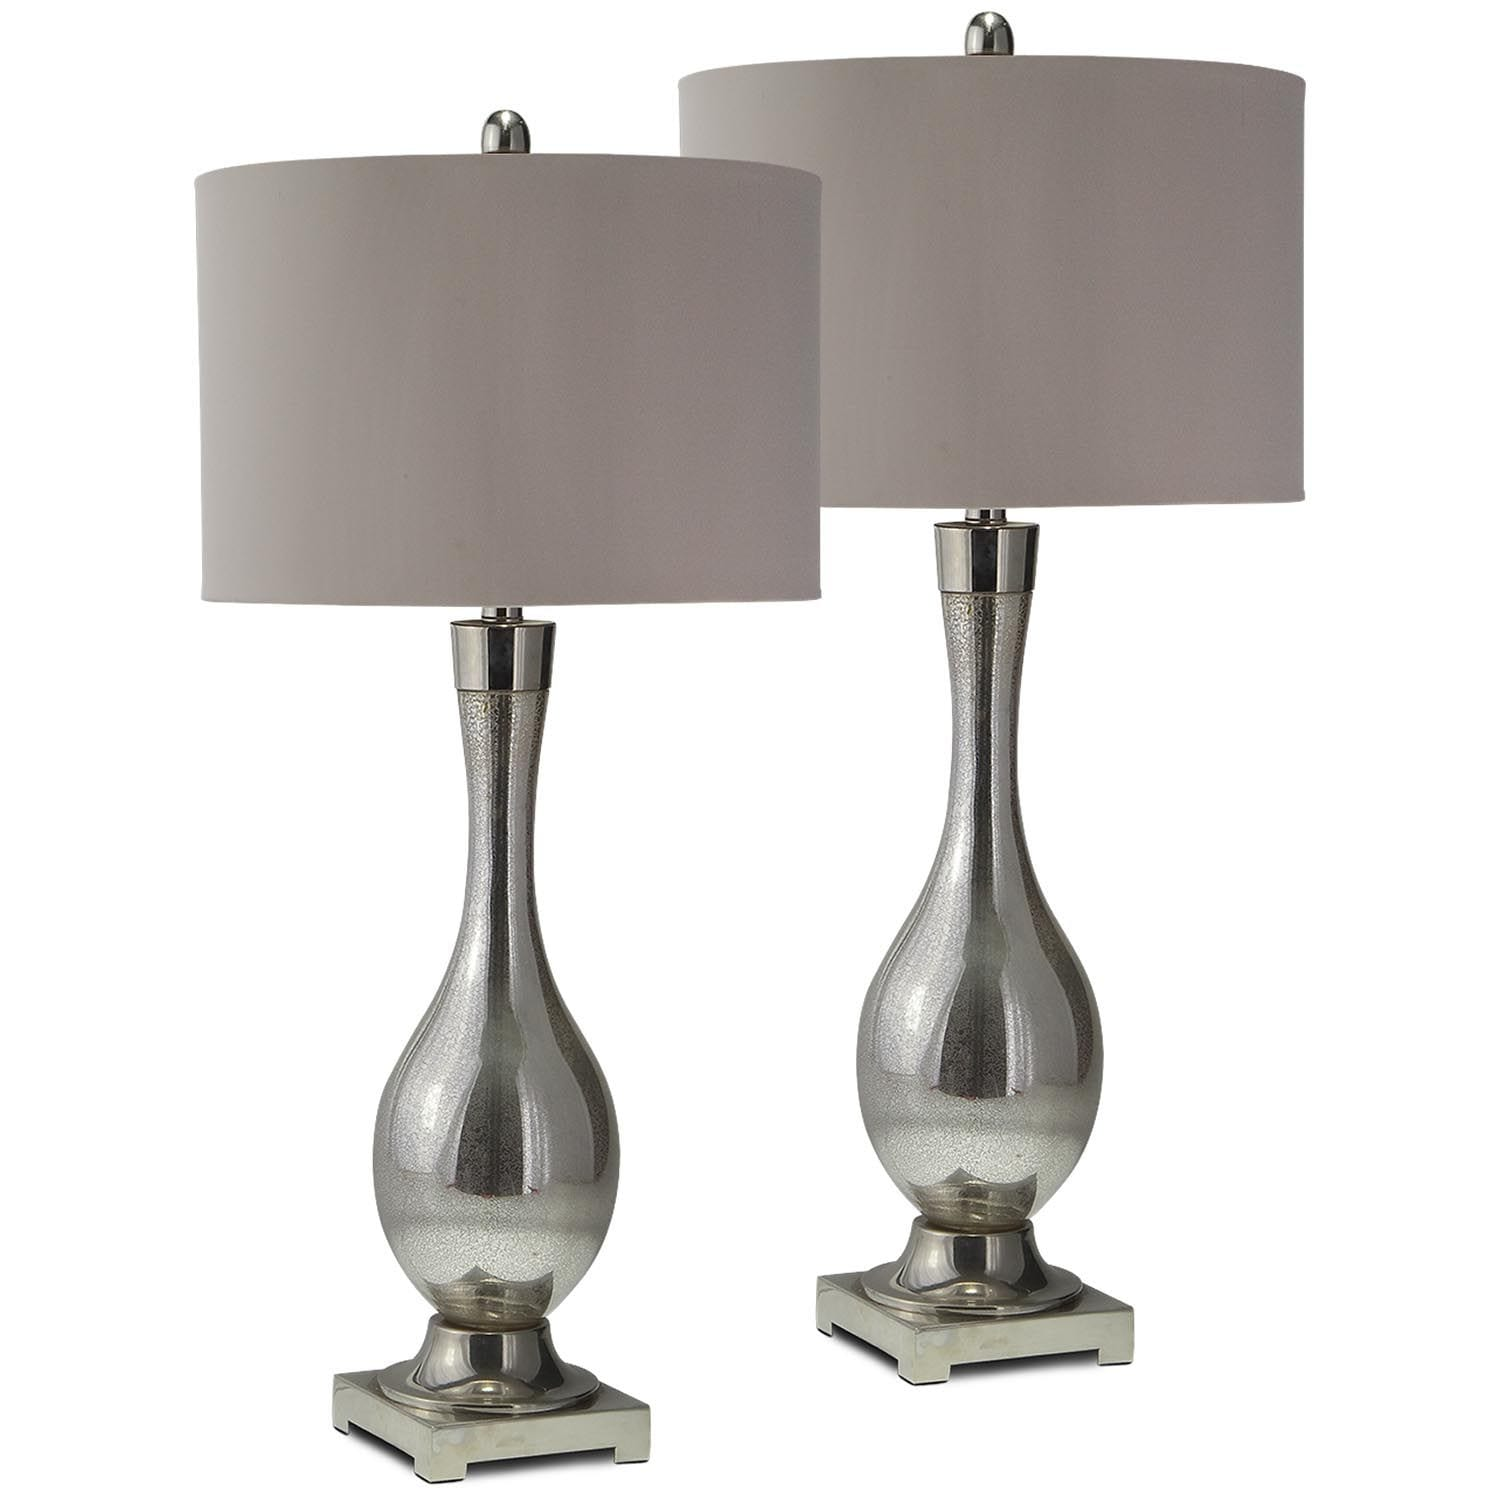 Mercury Glass 2-Pack Table Lamp Set